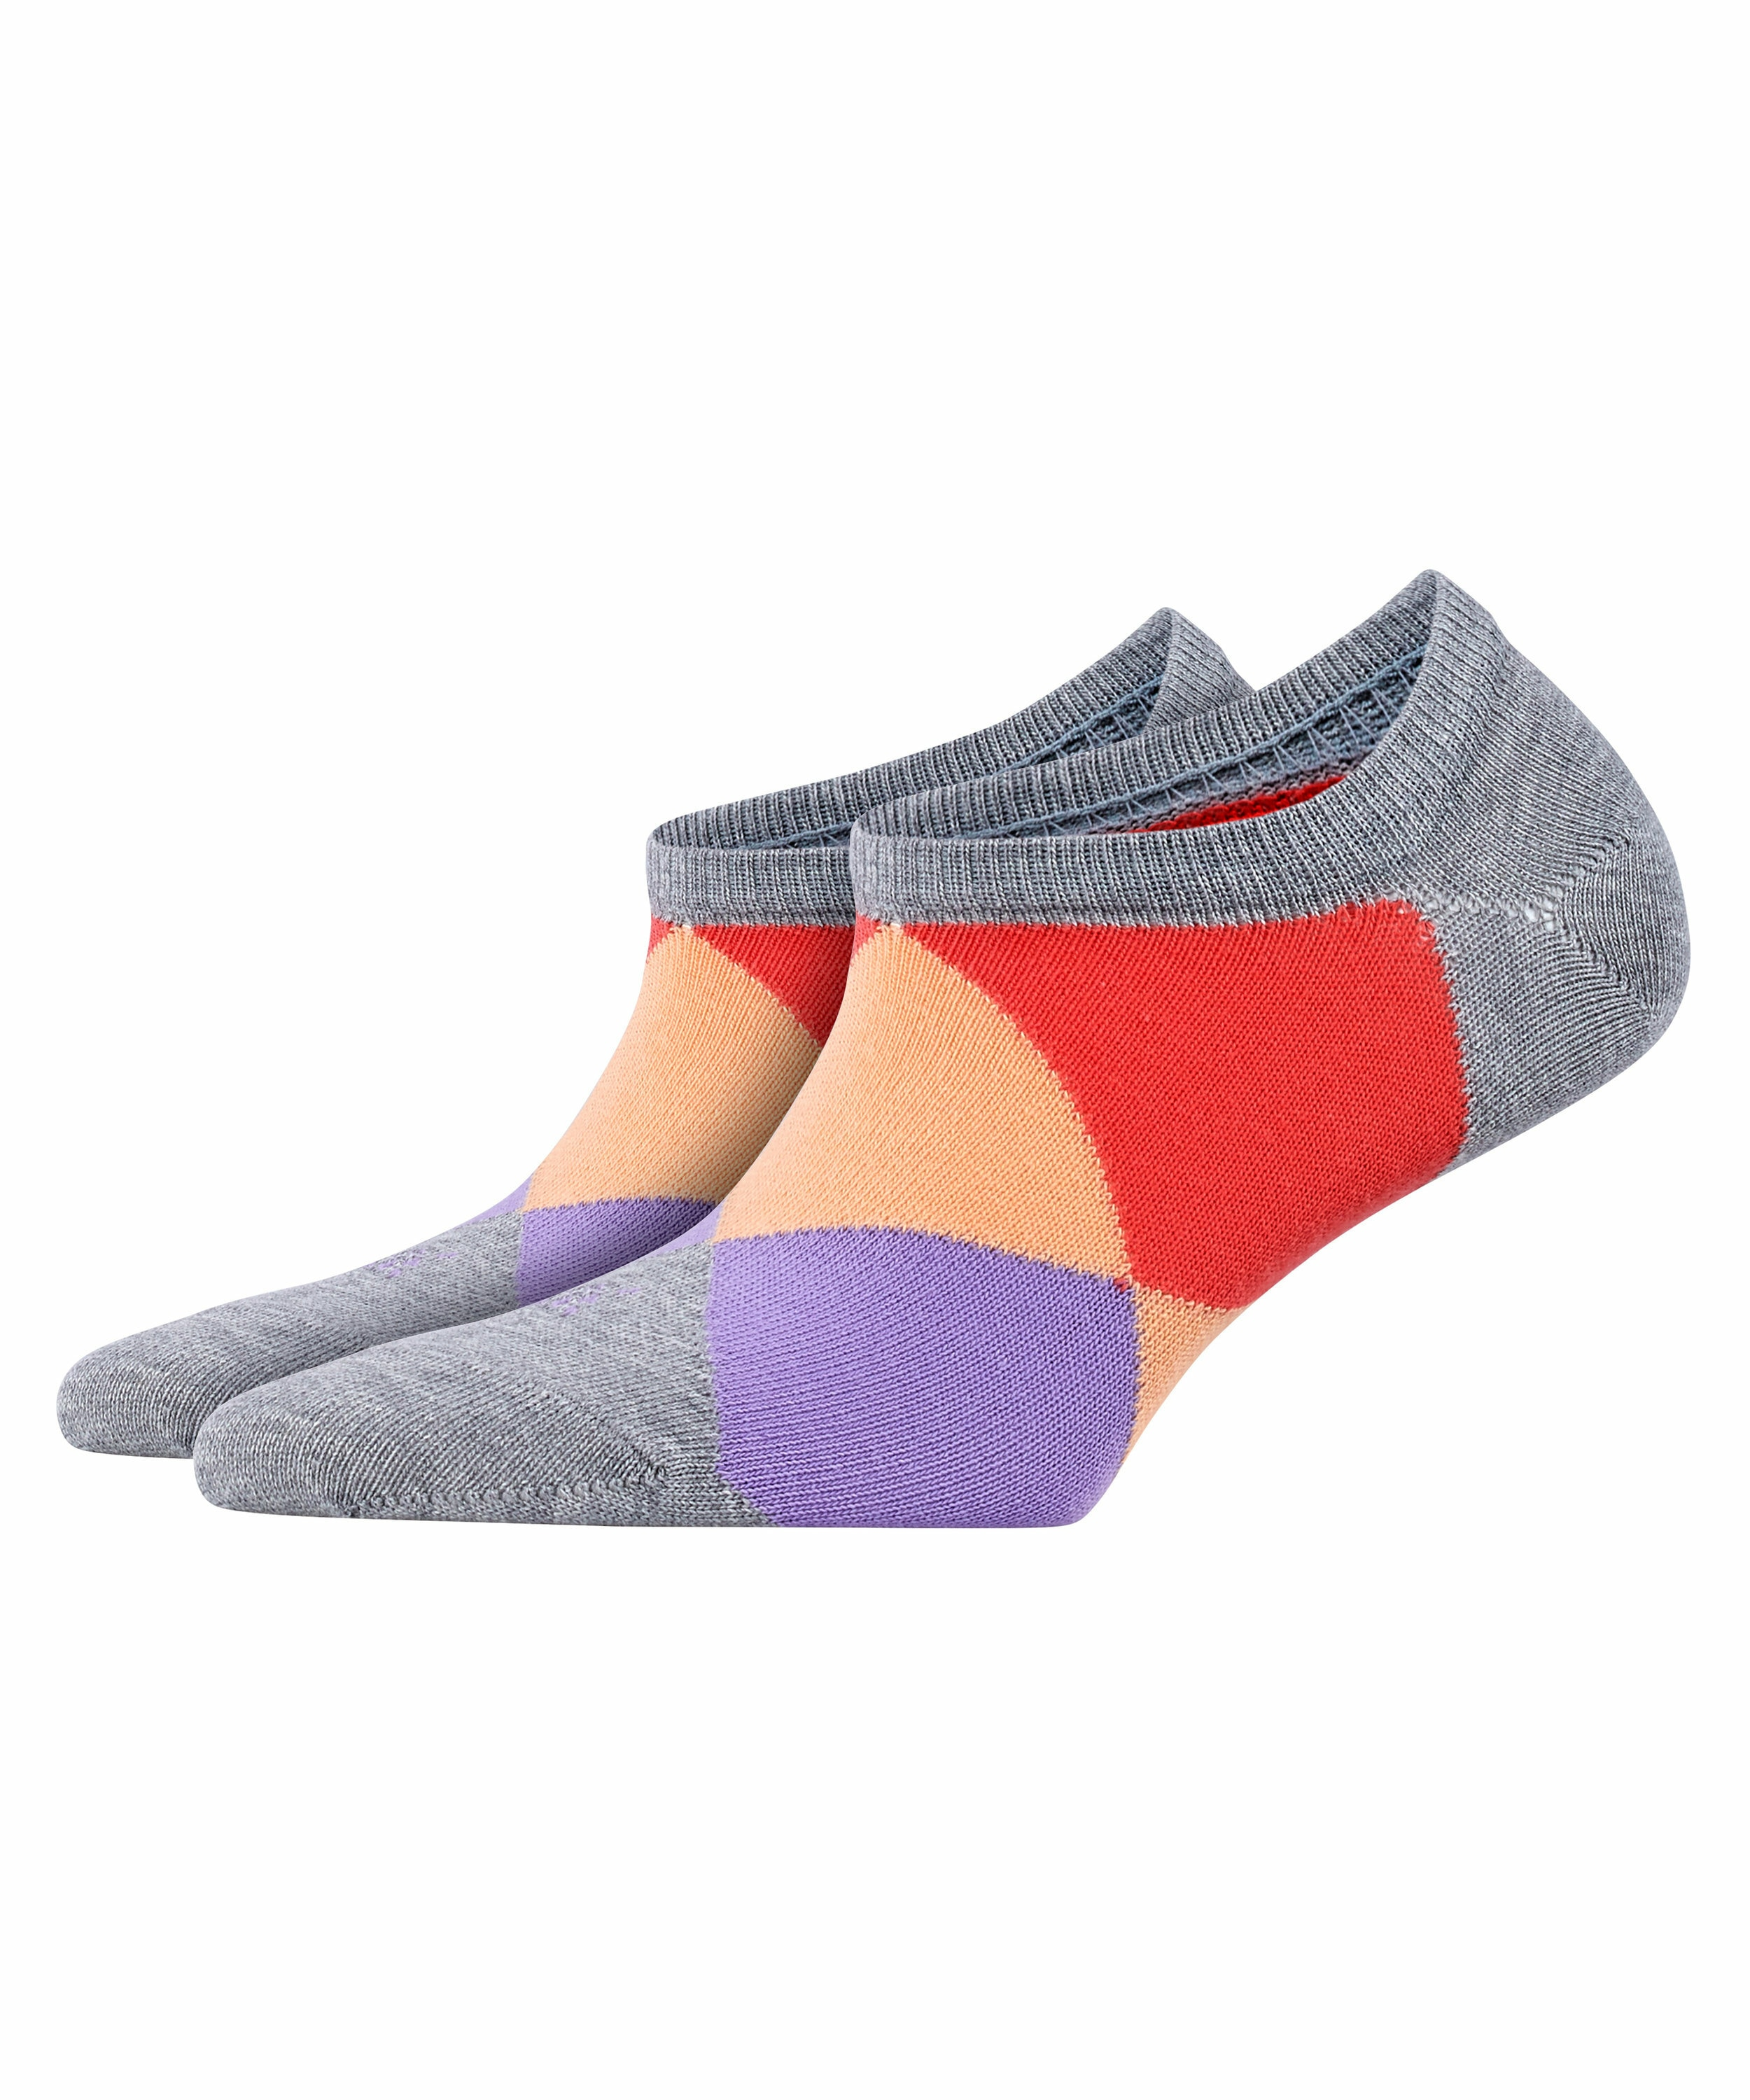 burlington -  Sneakersocken Bonnie (1 Paar)